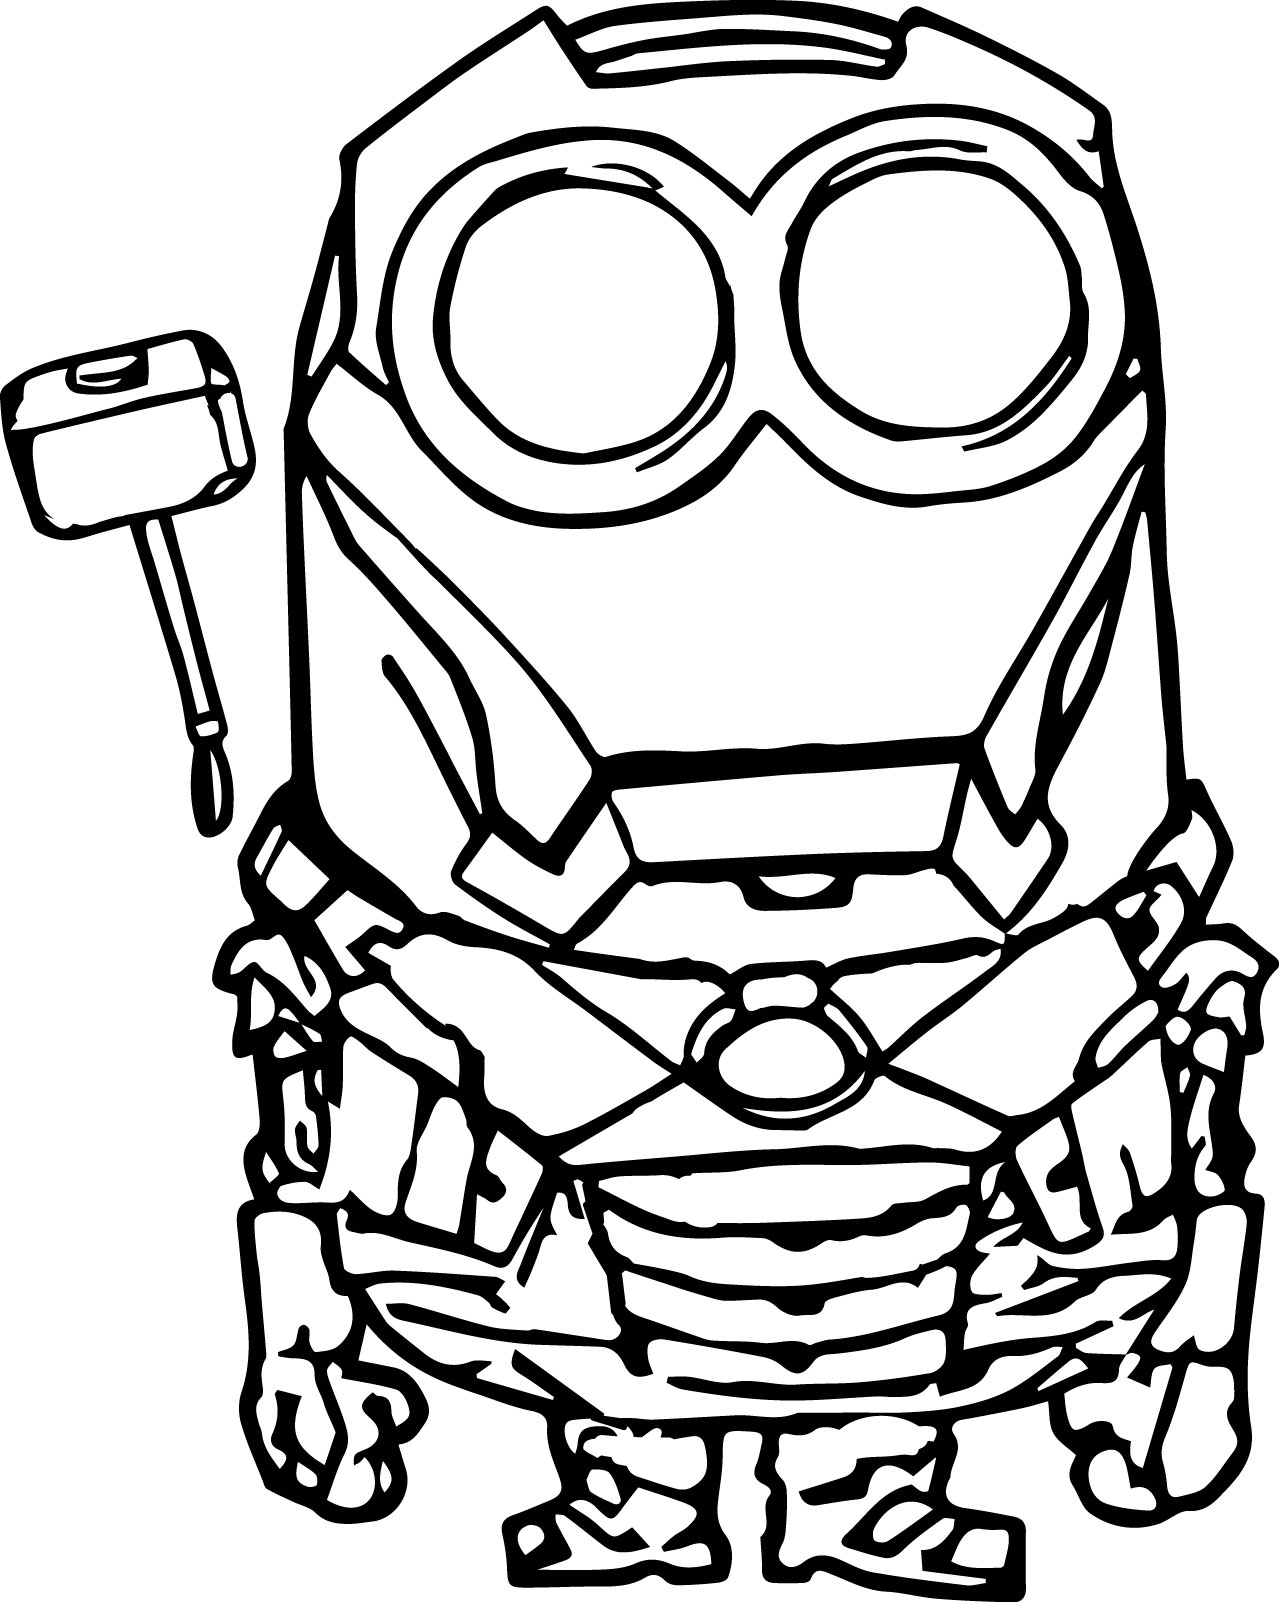 200x313 Minions Coloring Printables Download Minion Pages 1279x1602 Robot Page Wecoloringpage